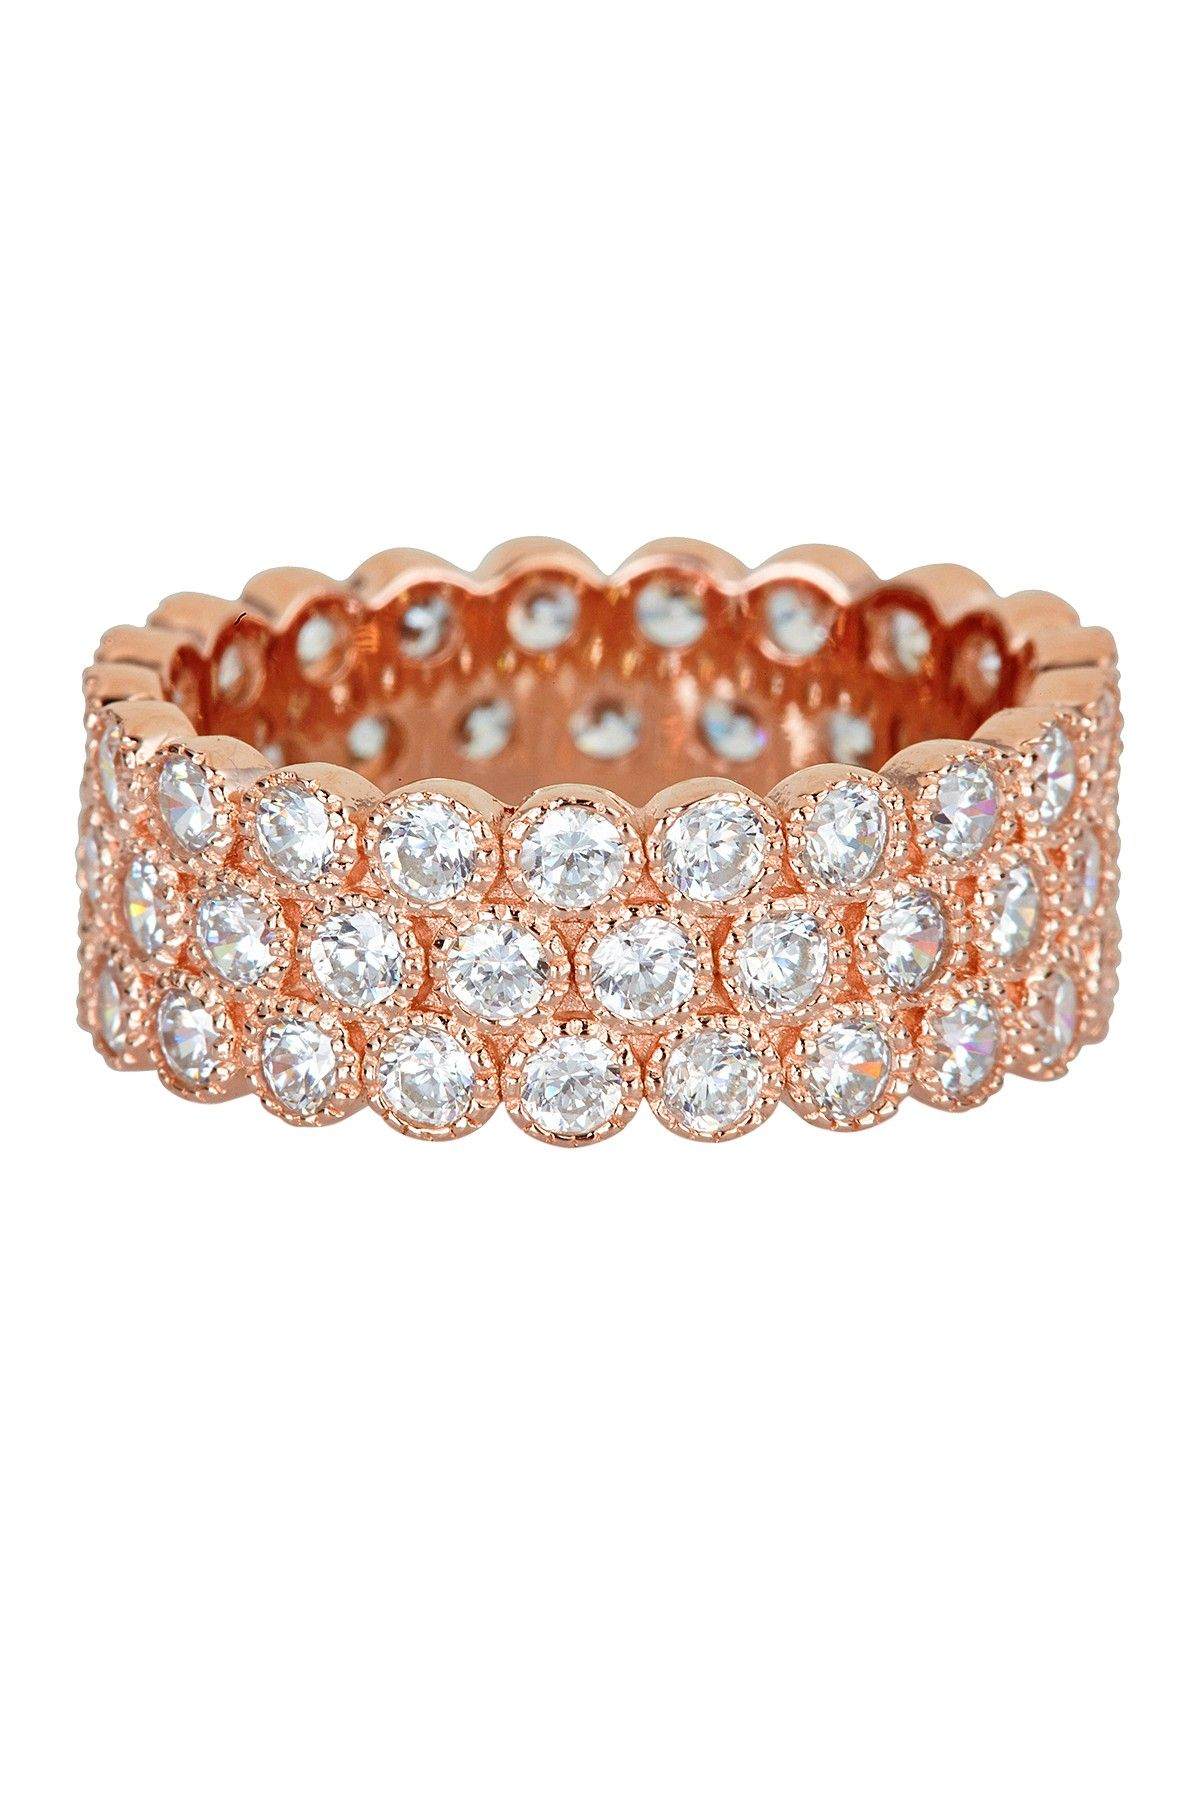 18K Rose Gold Vermeil Micro Pave CZ Triple Row Bubble Eternity Ring by Luna Tagliare on @HauteLook